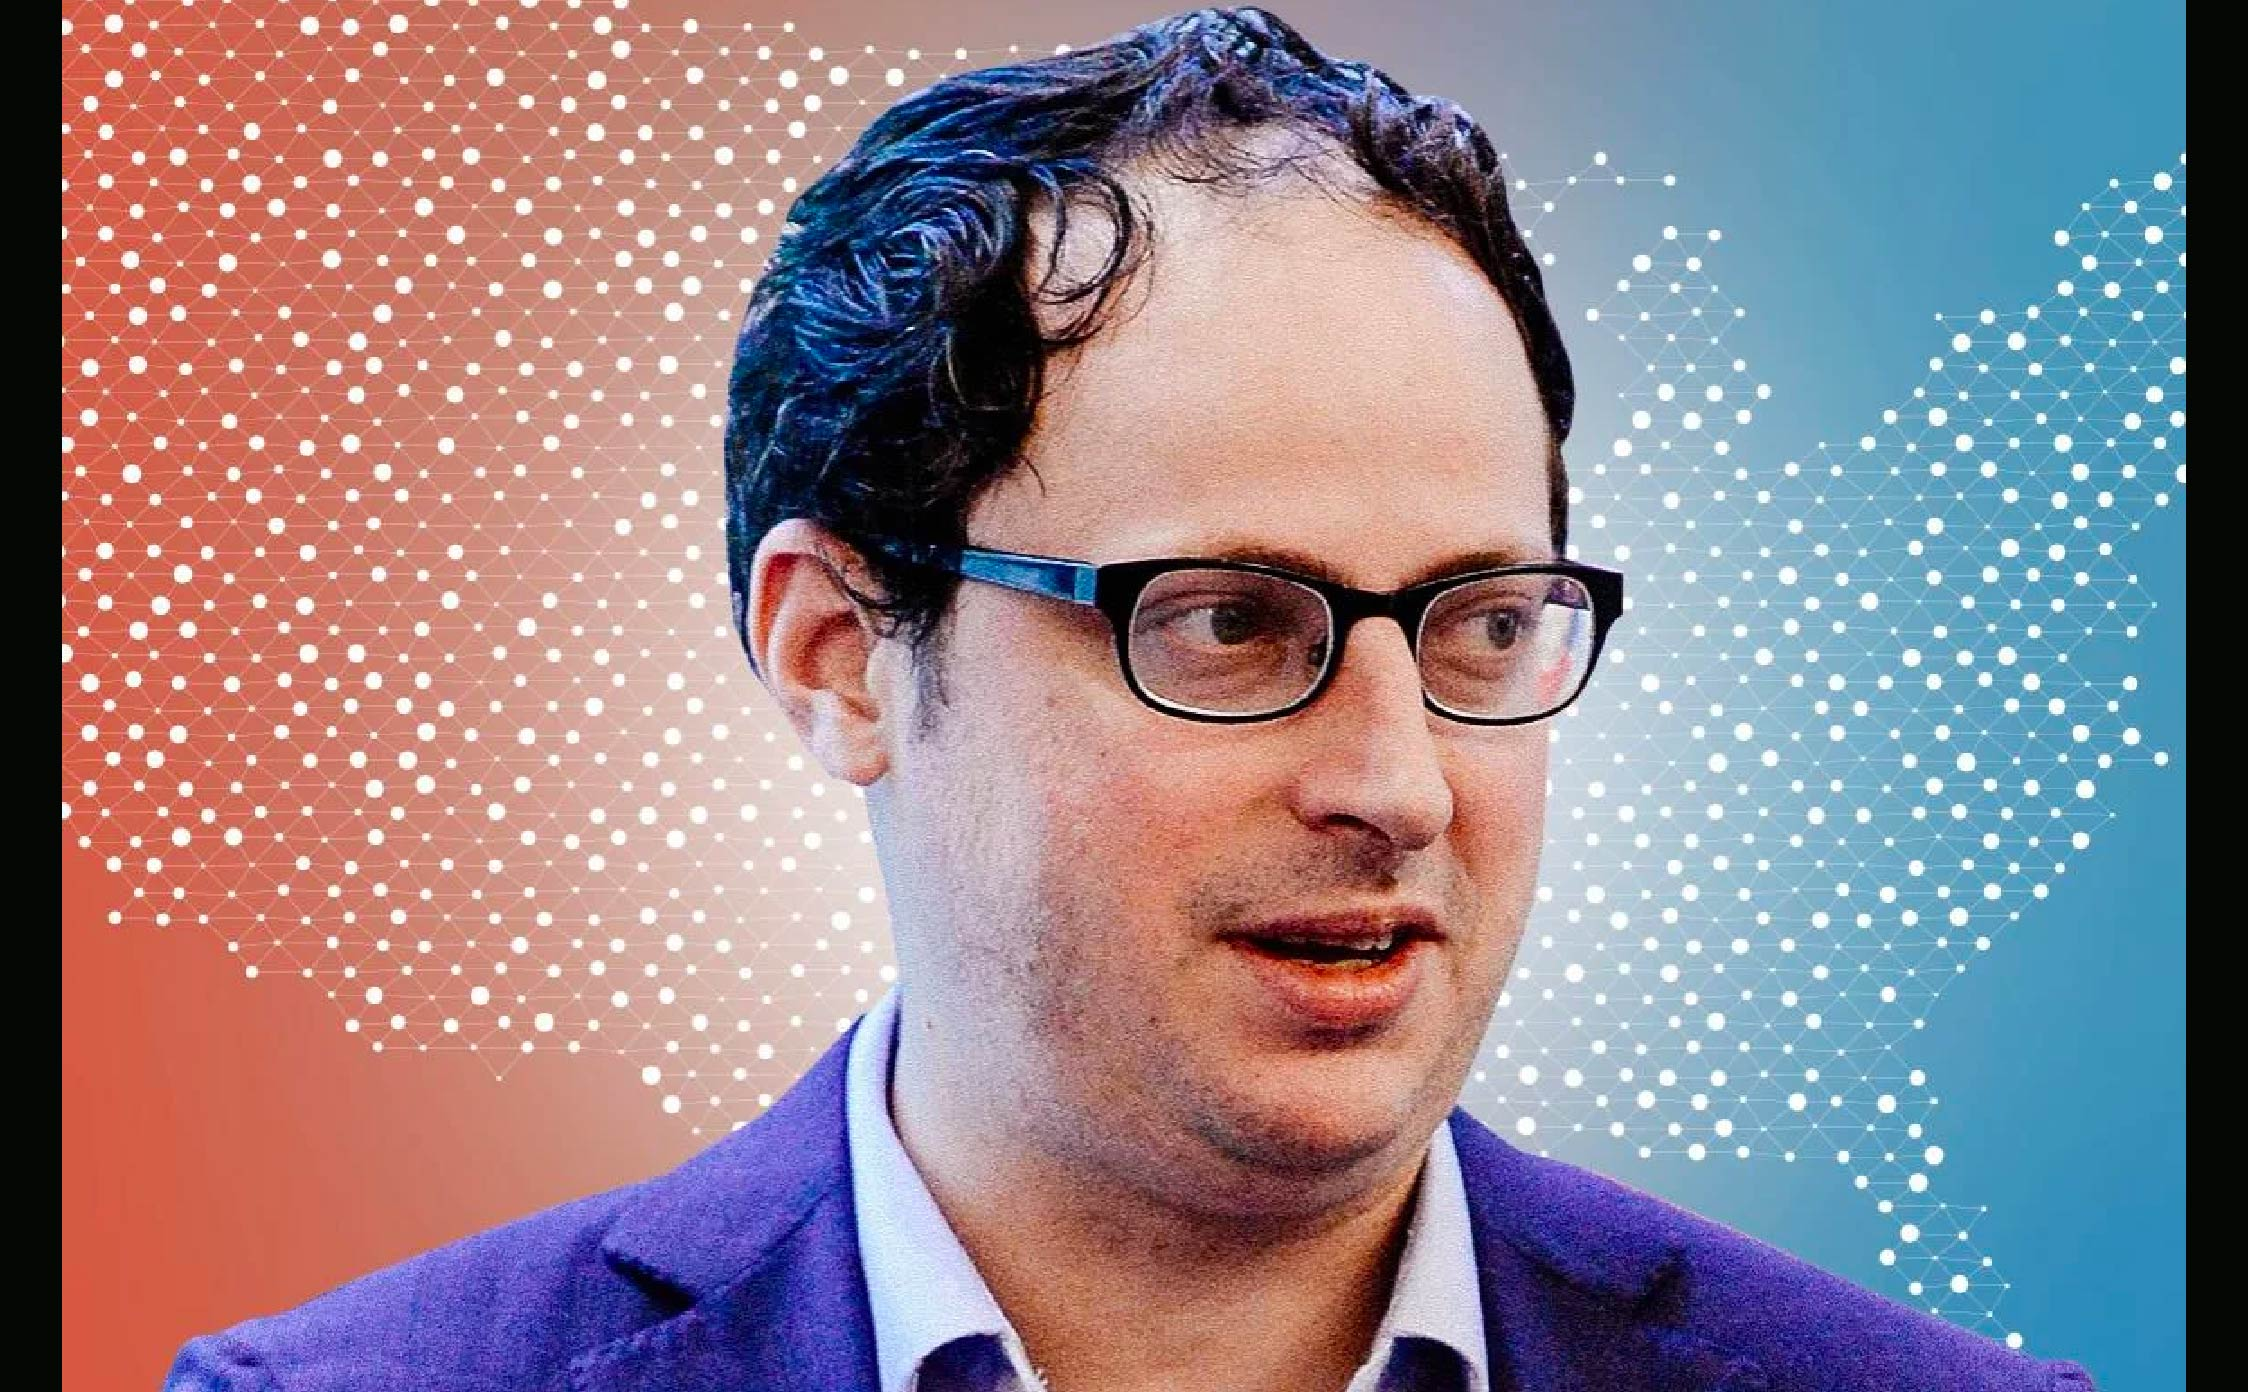 Disgraced Pollster Nate Silver Gets Pummeled For His Latest Outrageous and Dangerous Election Prediction